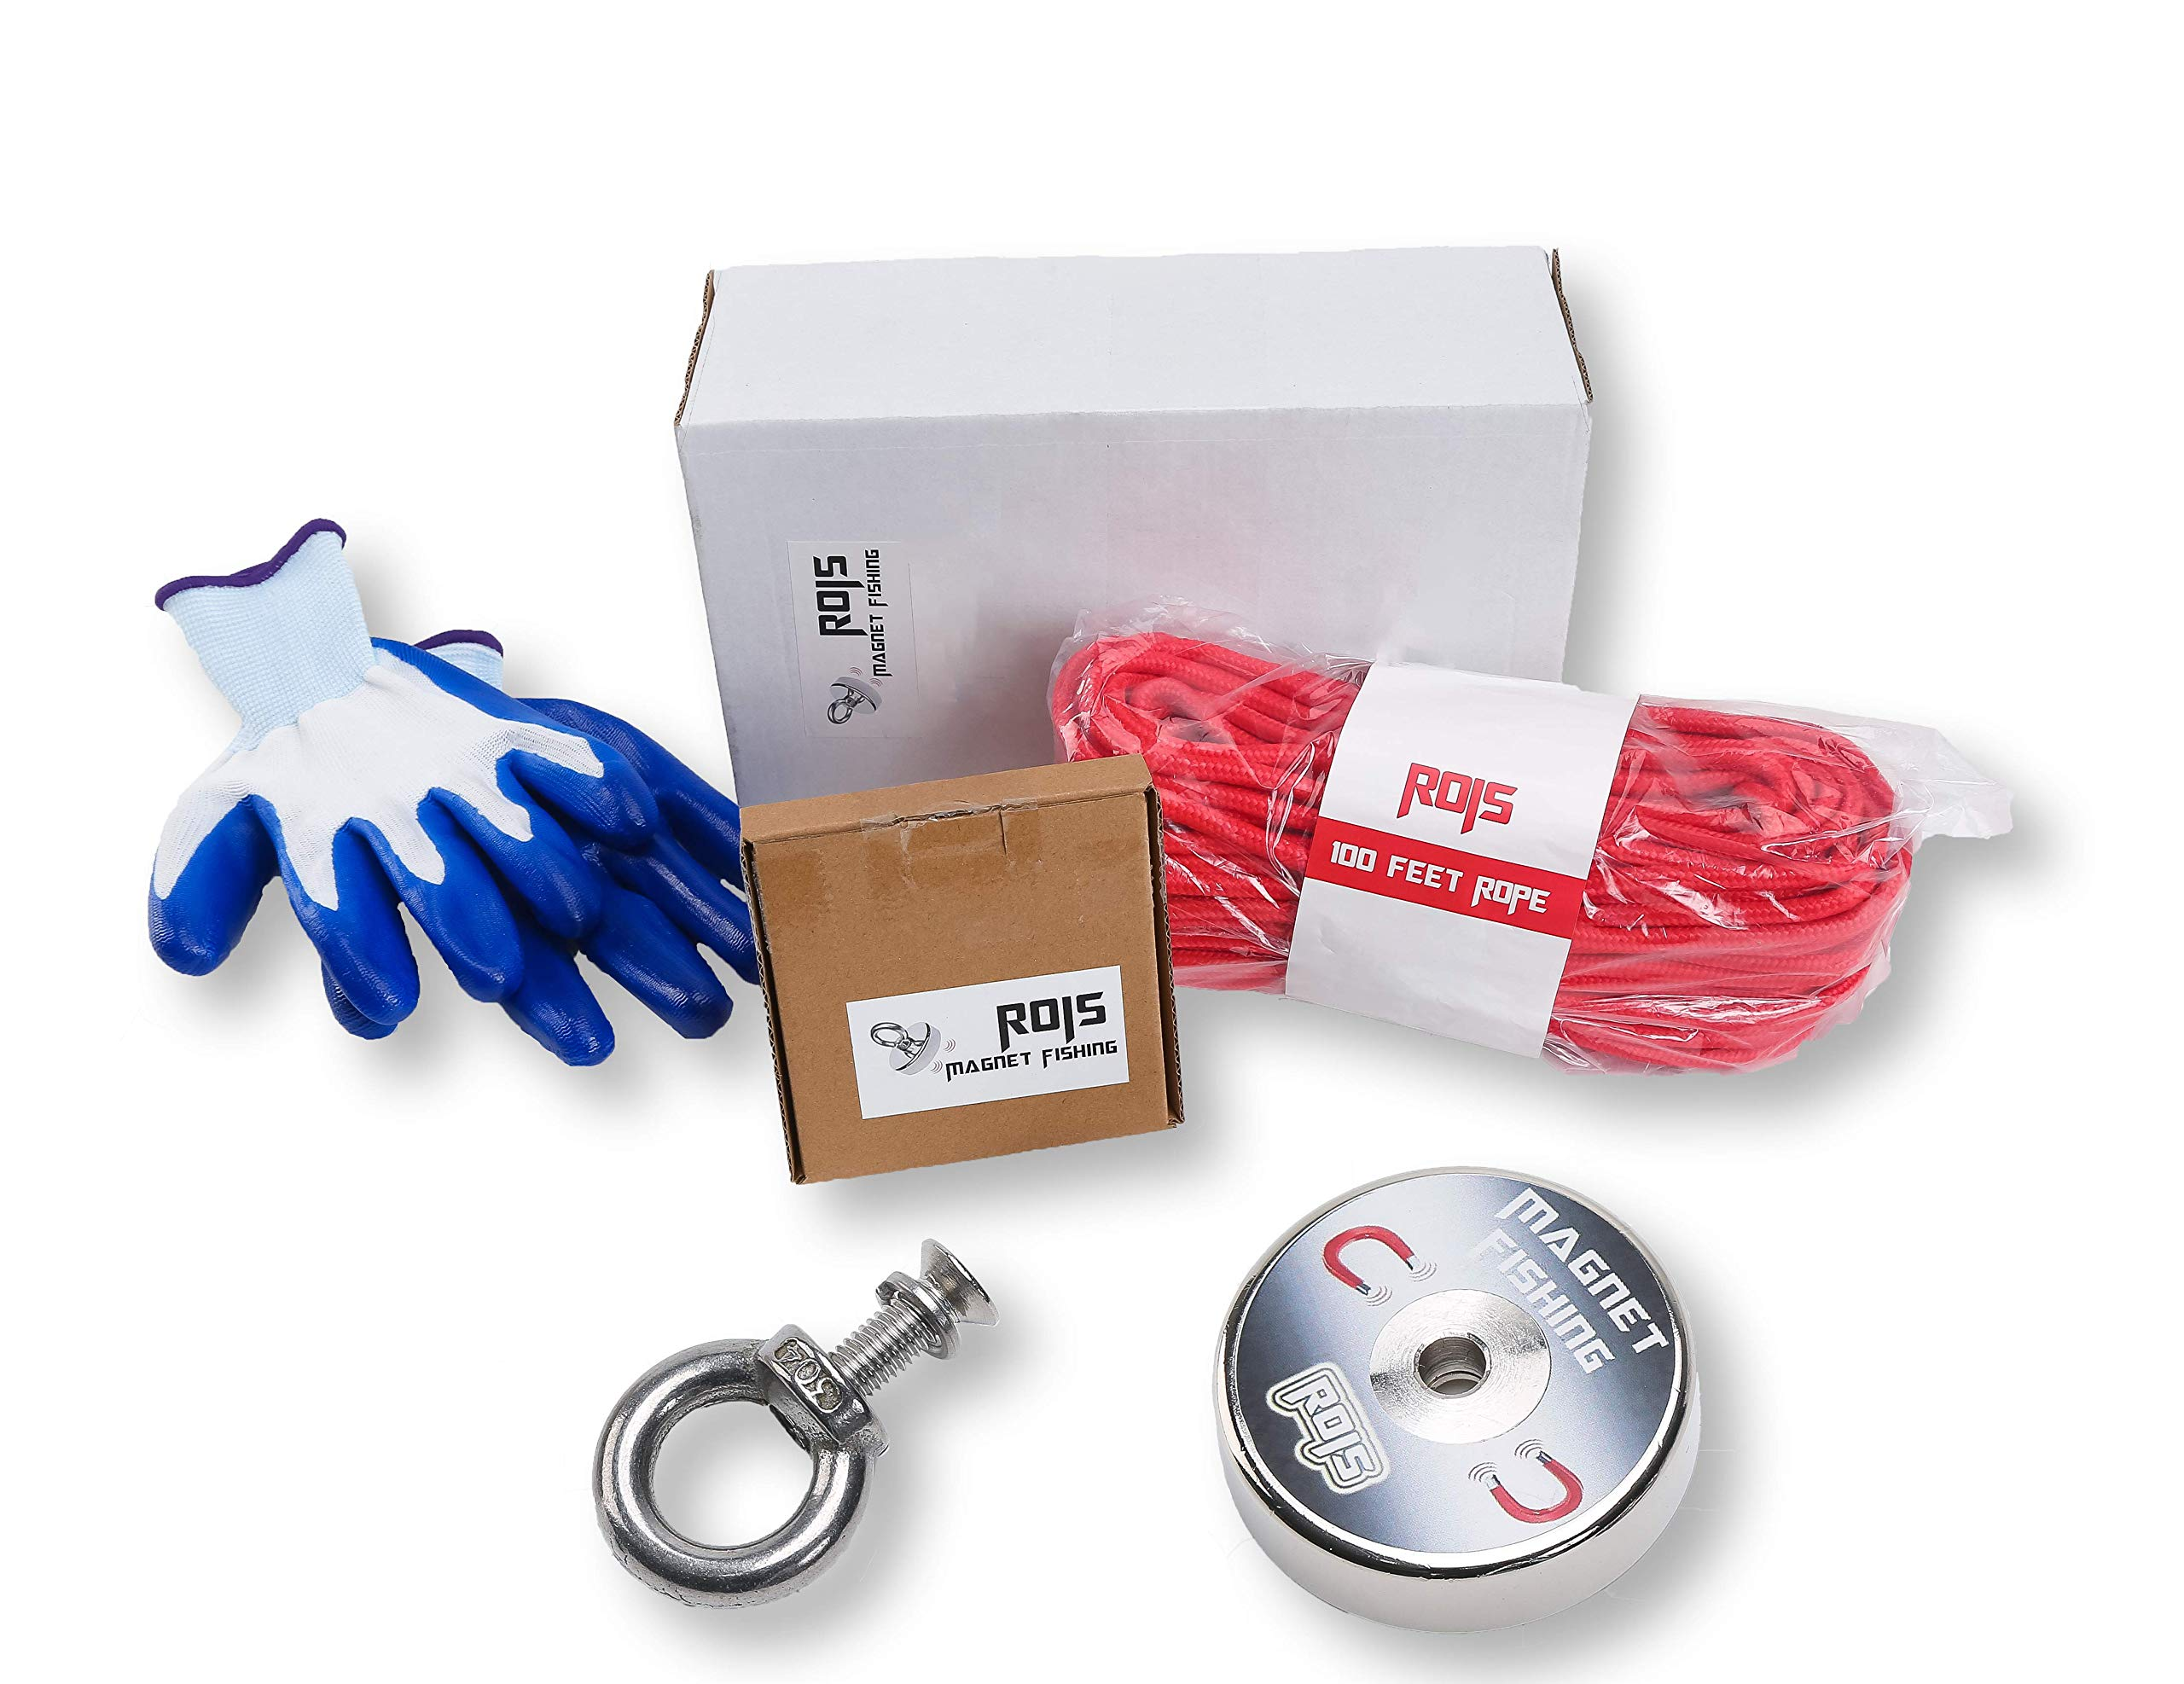 Super Powerful Magnet Fishing with Diameter 2.36'' and Maximum Pulling Force of 380lbs Including 100 feet Rope and Protection Gloves - Locked Eyebolt